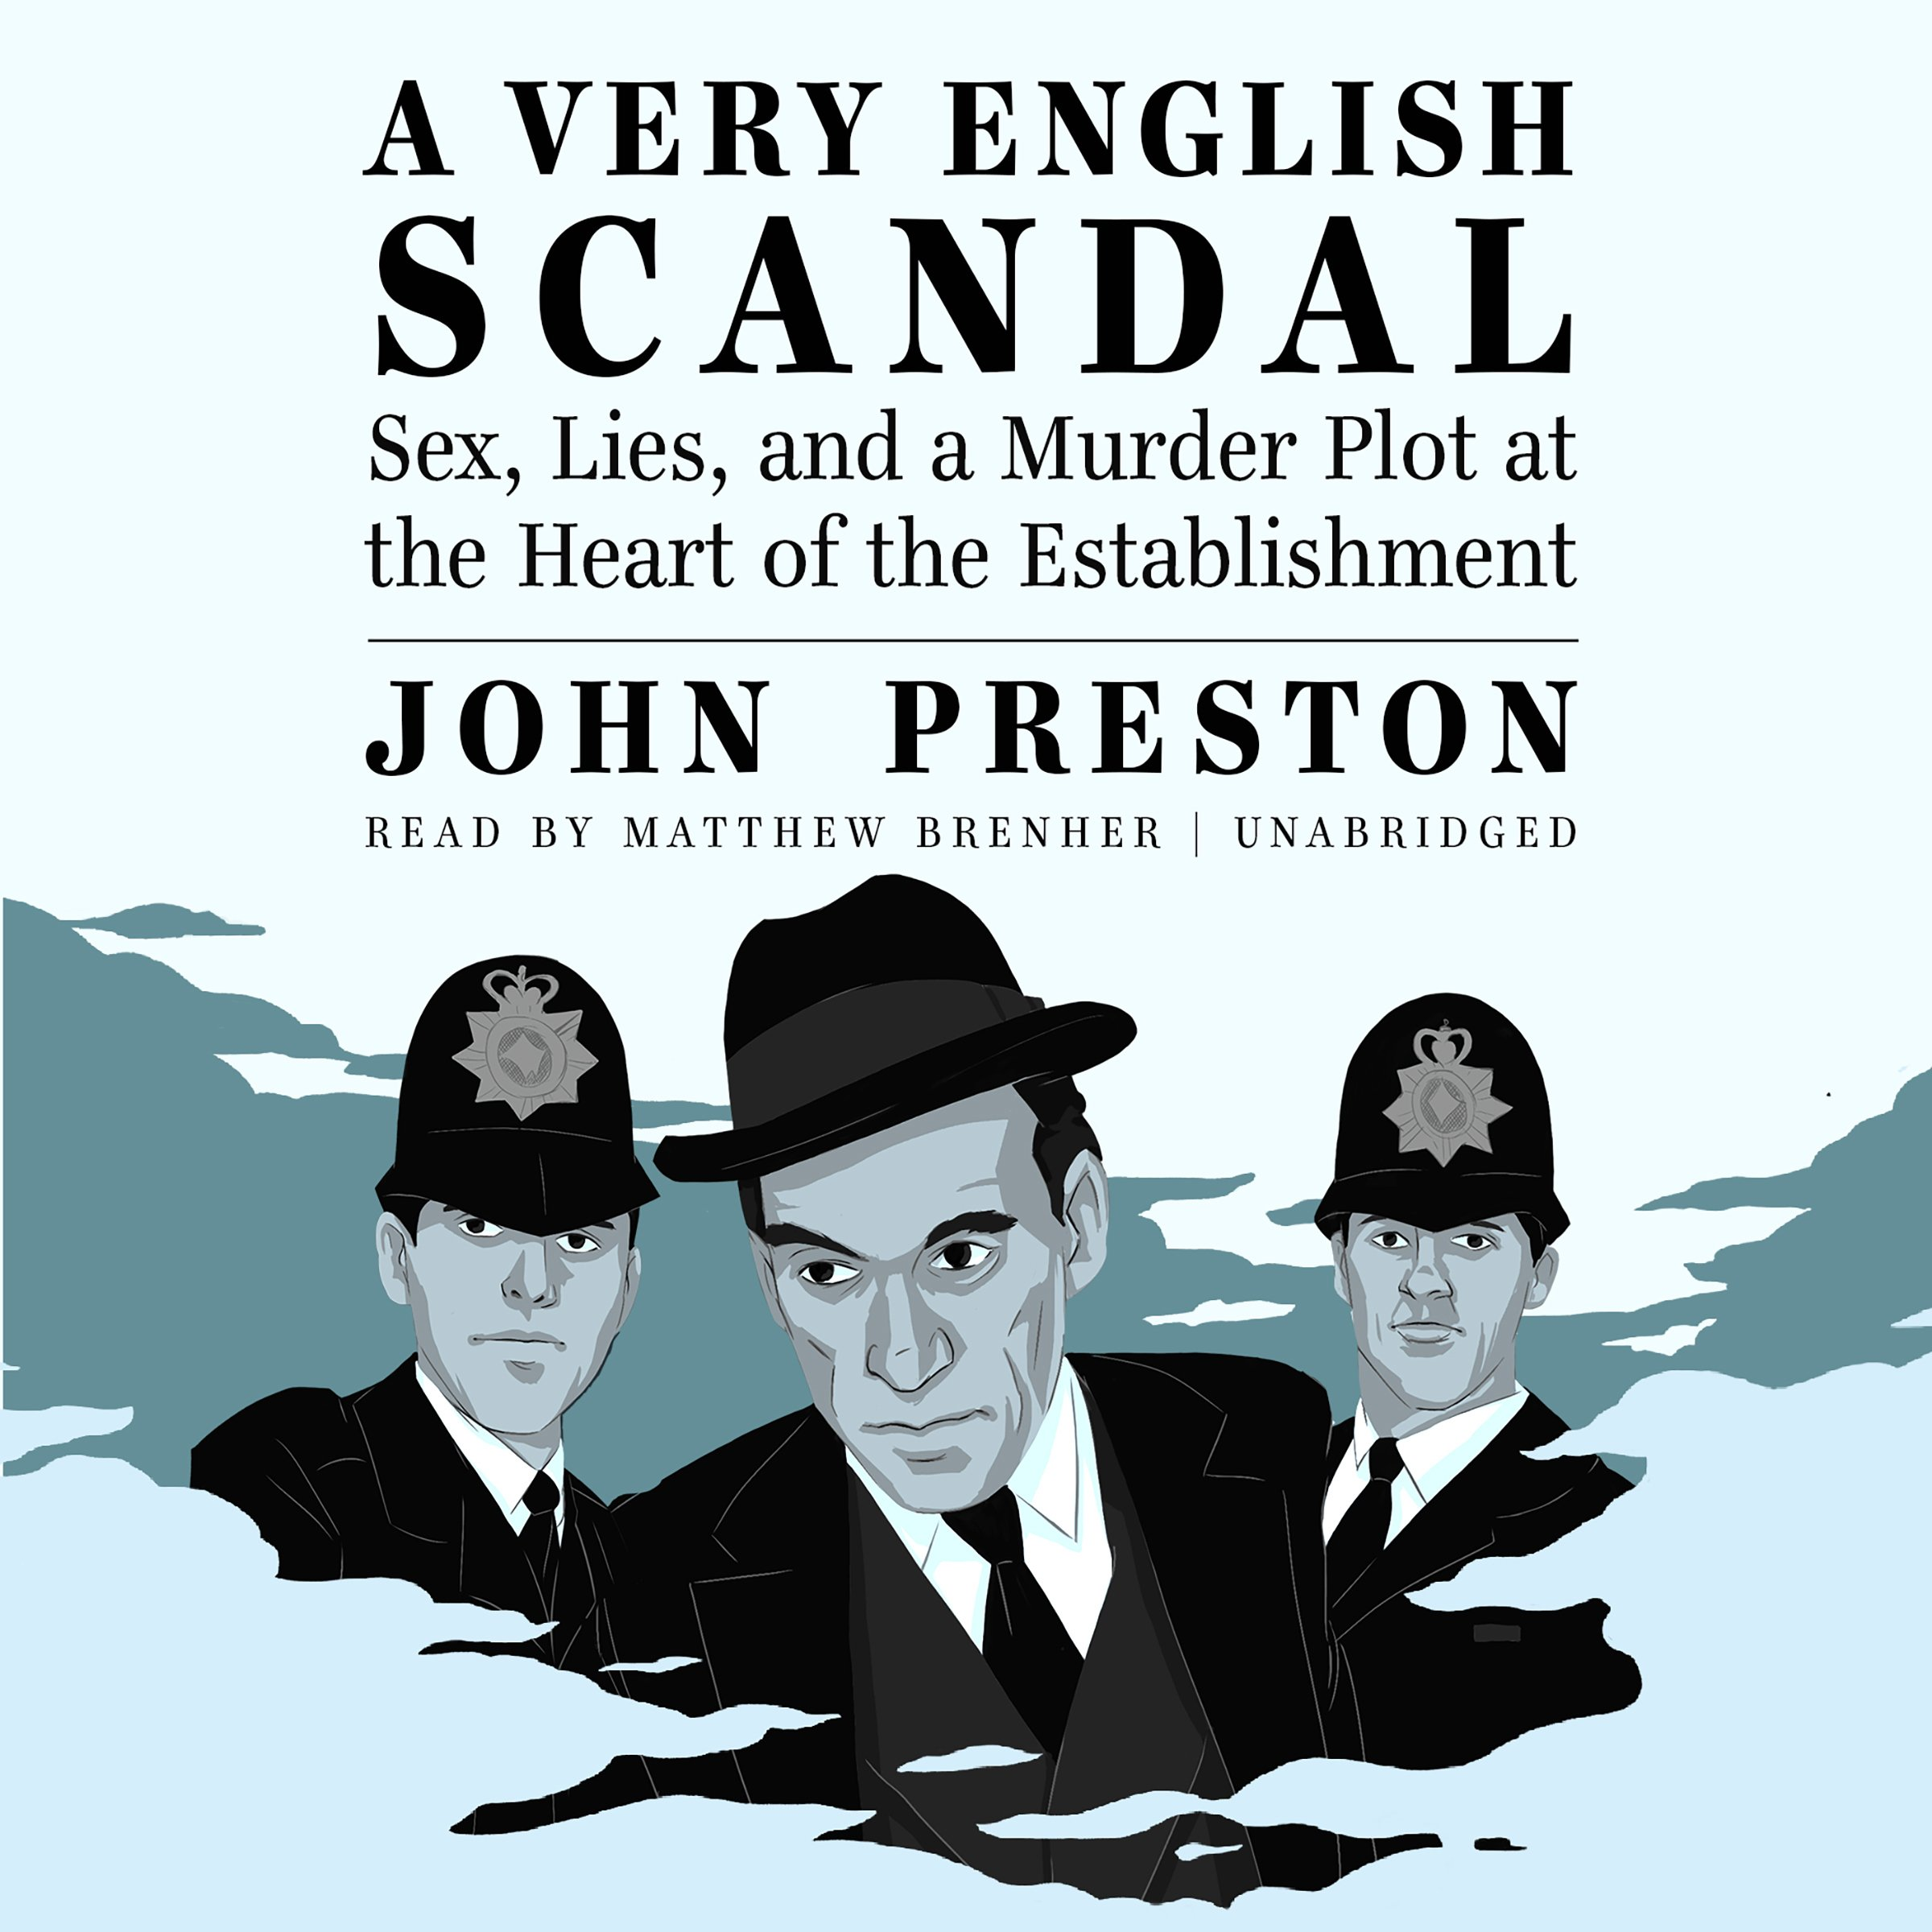 A Very English Scandal: Sex, Lies, and a Murder Plot at the Heart of the Establishment